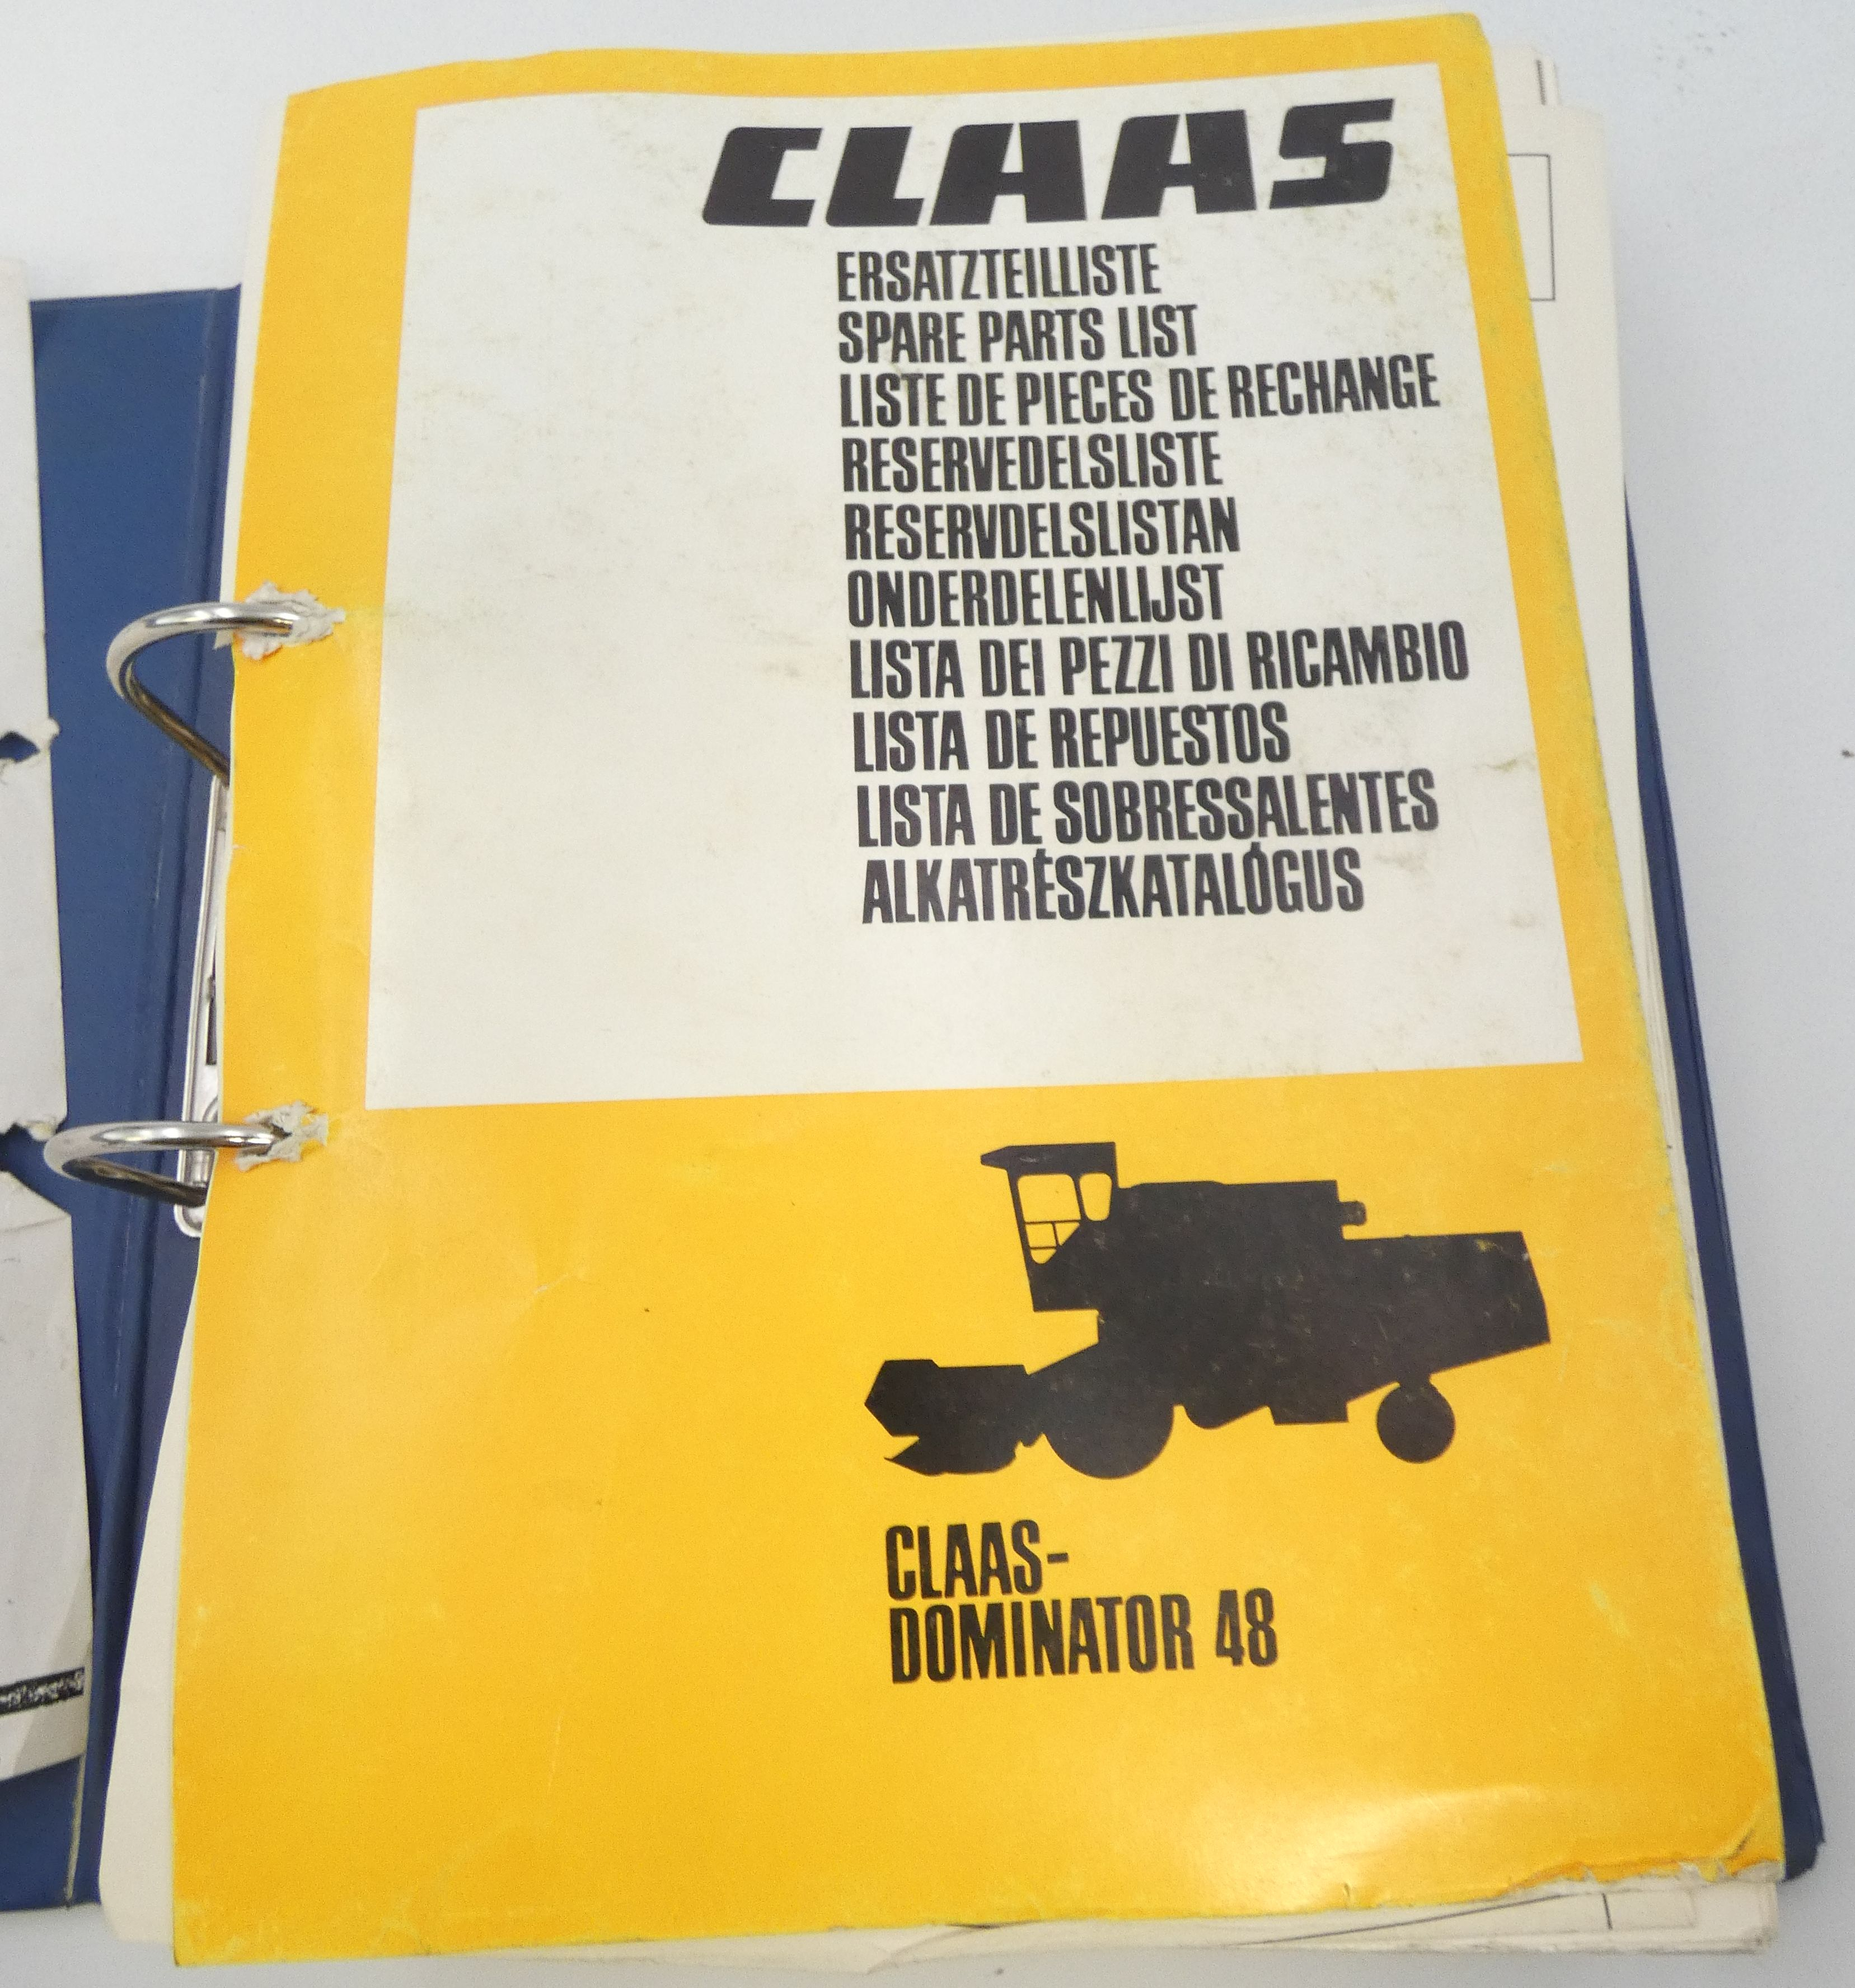 Claas Dominator 48 spare parts list